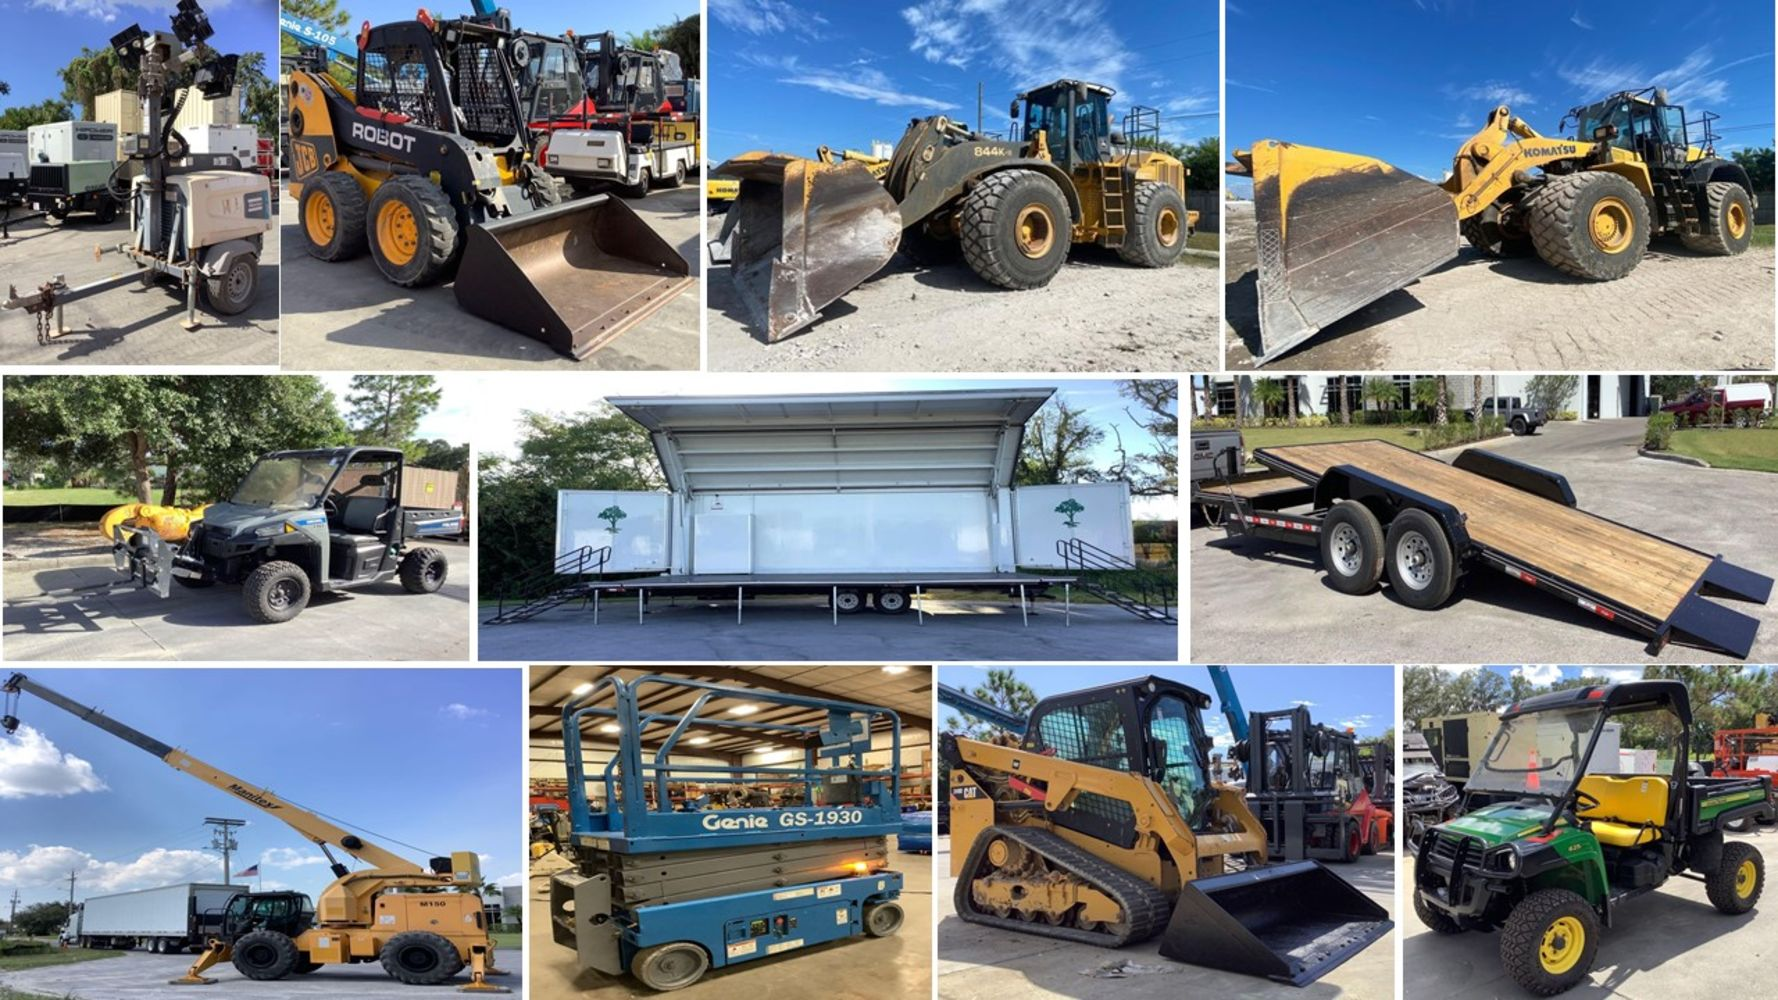 Industrial Warehouse & Construction Equipment Auction